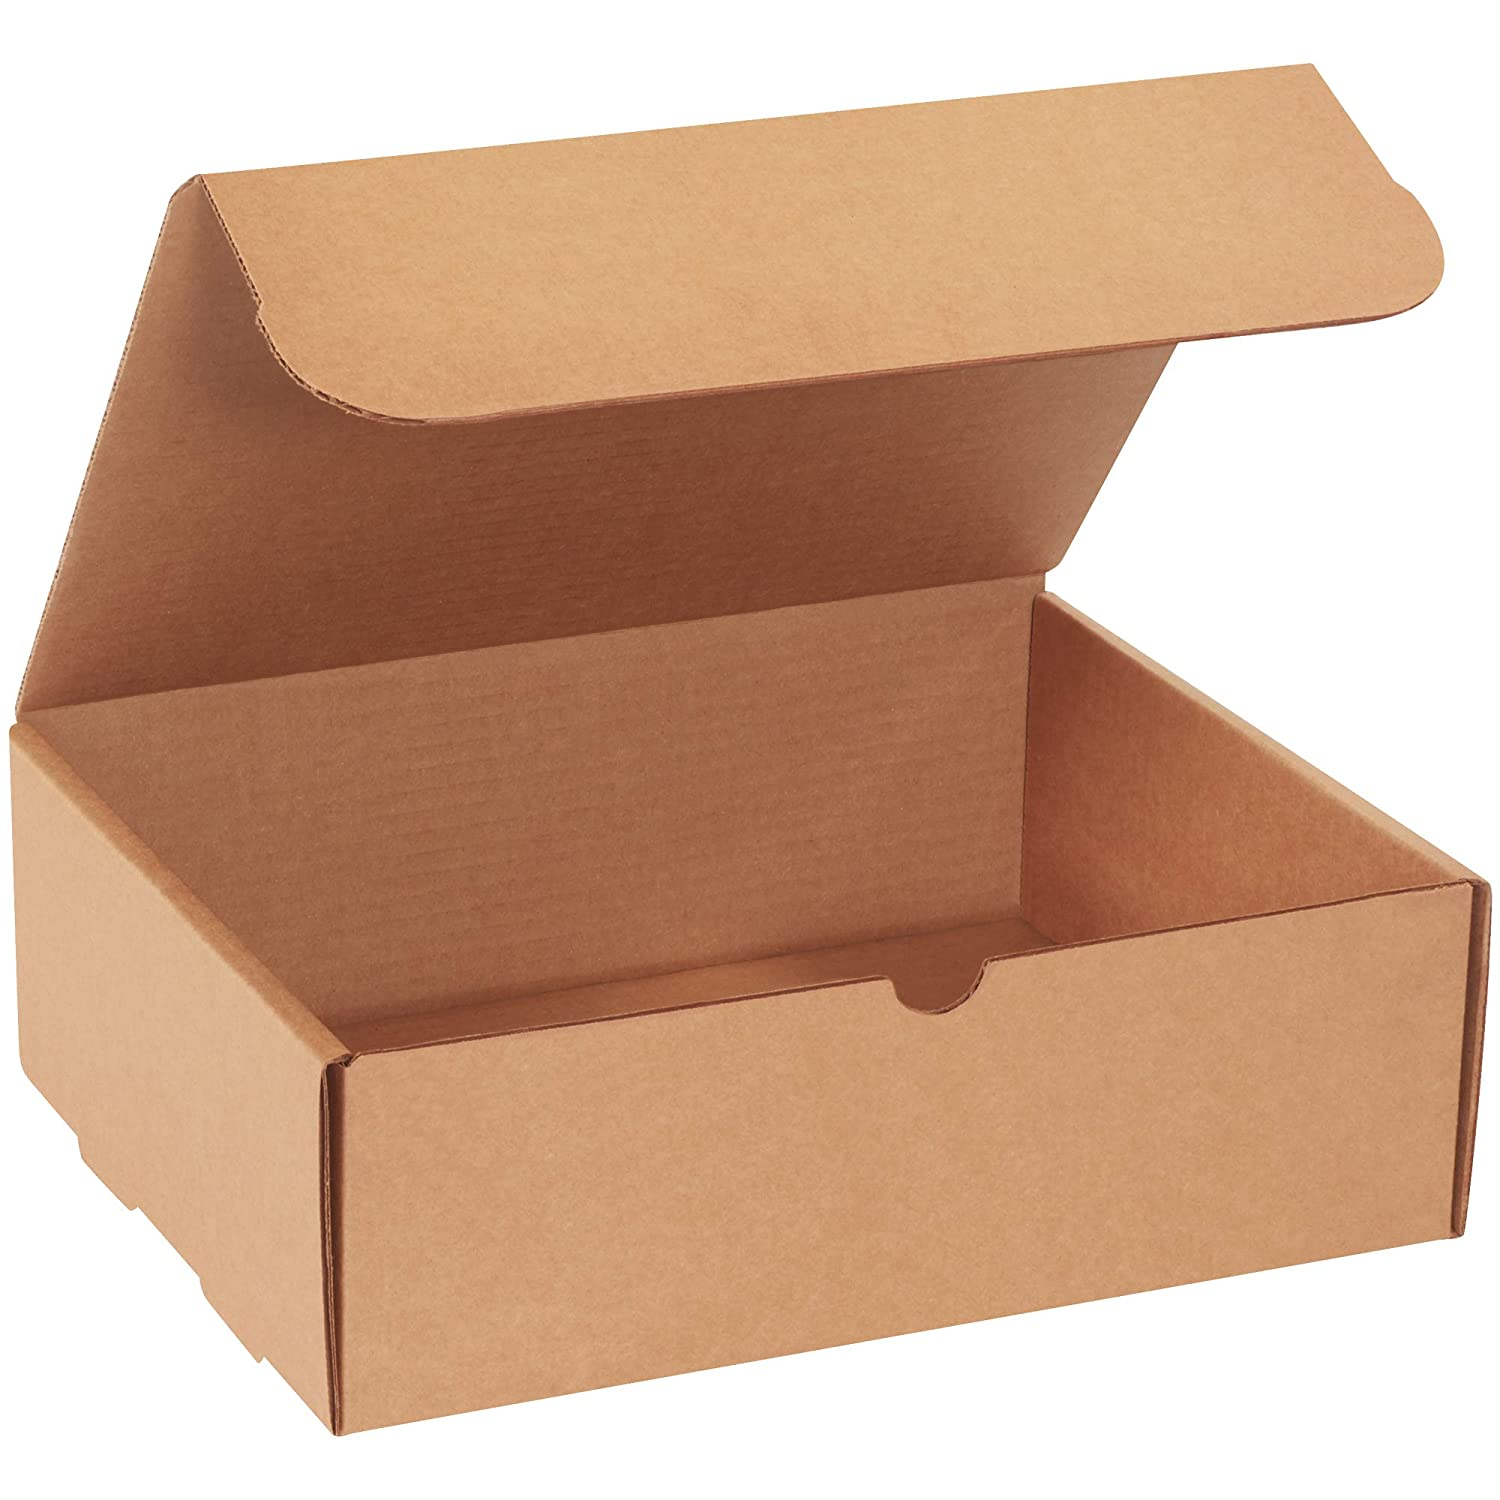 50 9 x 4 x 2 White Corrugated Mailers Die Cut Tuck Flap Boxes Free Shipping